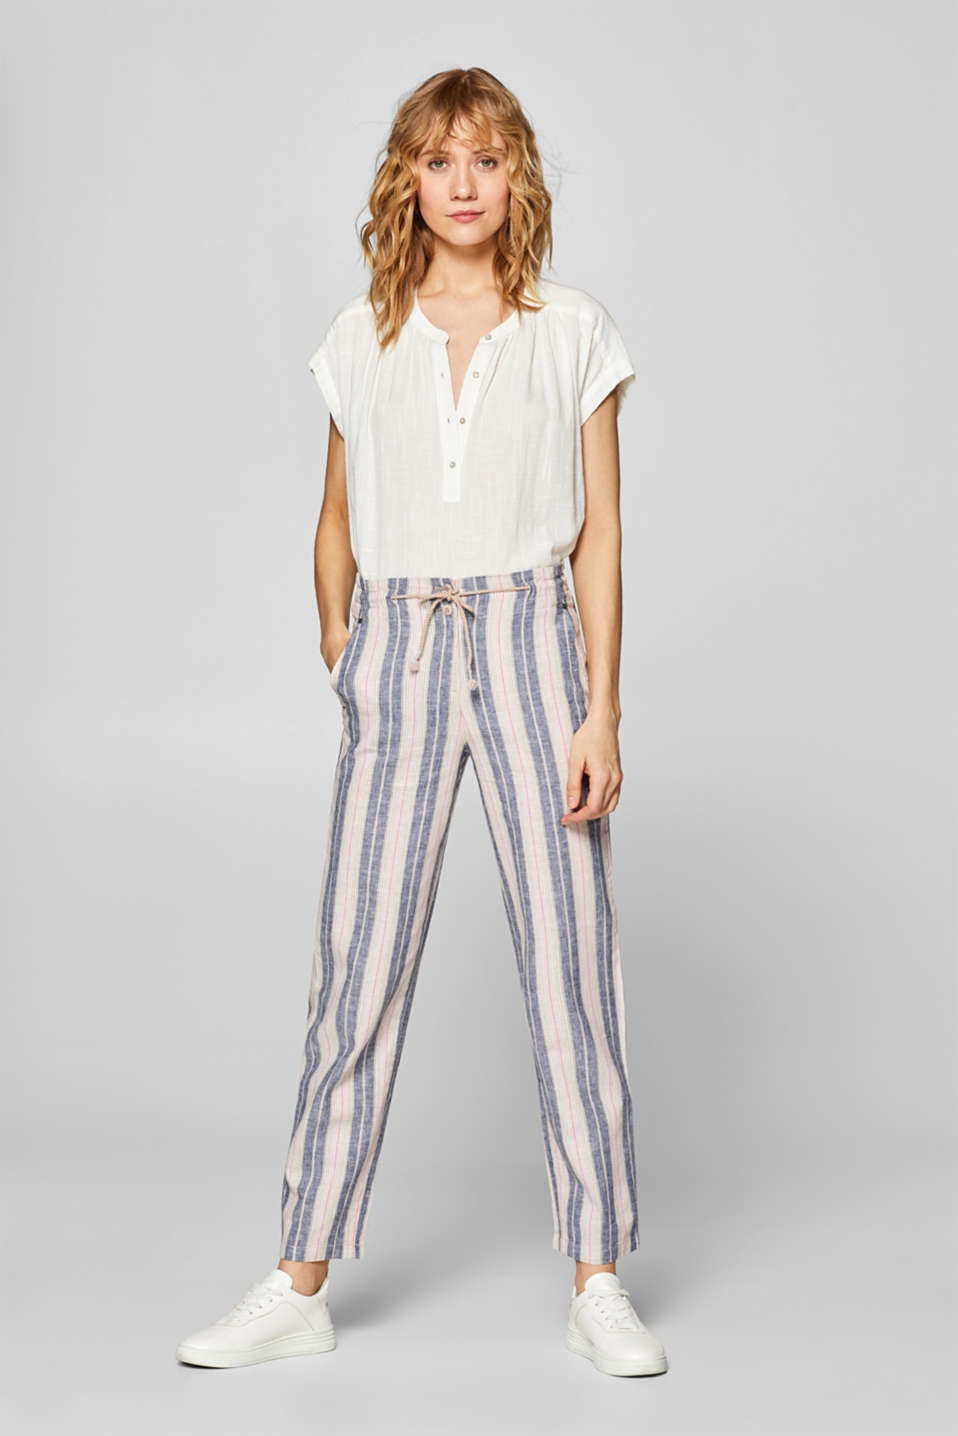 Esprit - Linen blend: Cloth trousers with multi-coloured stripes